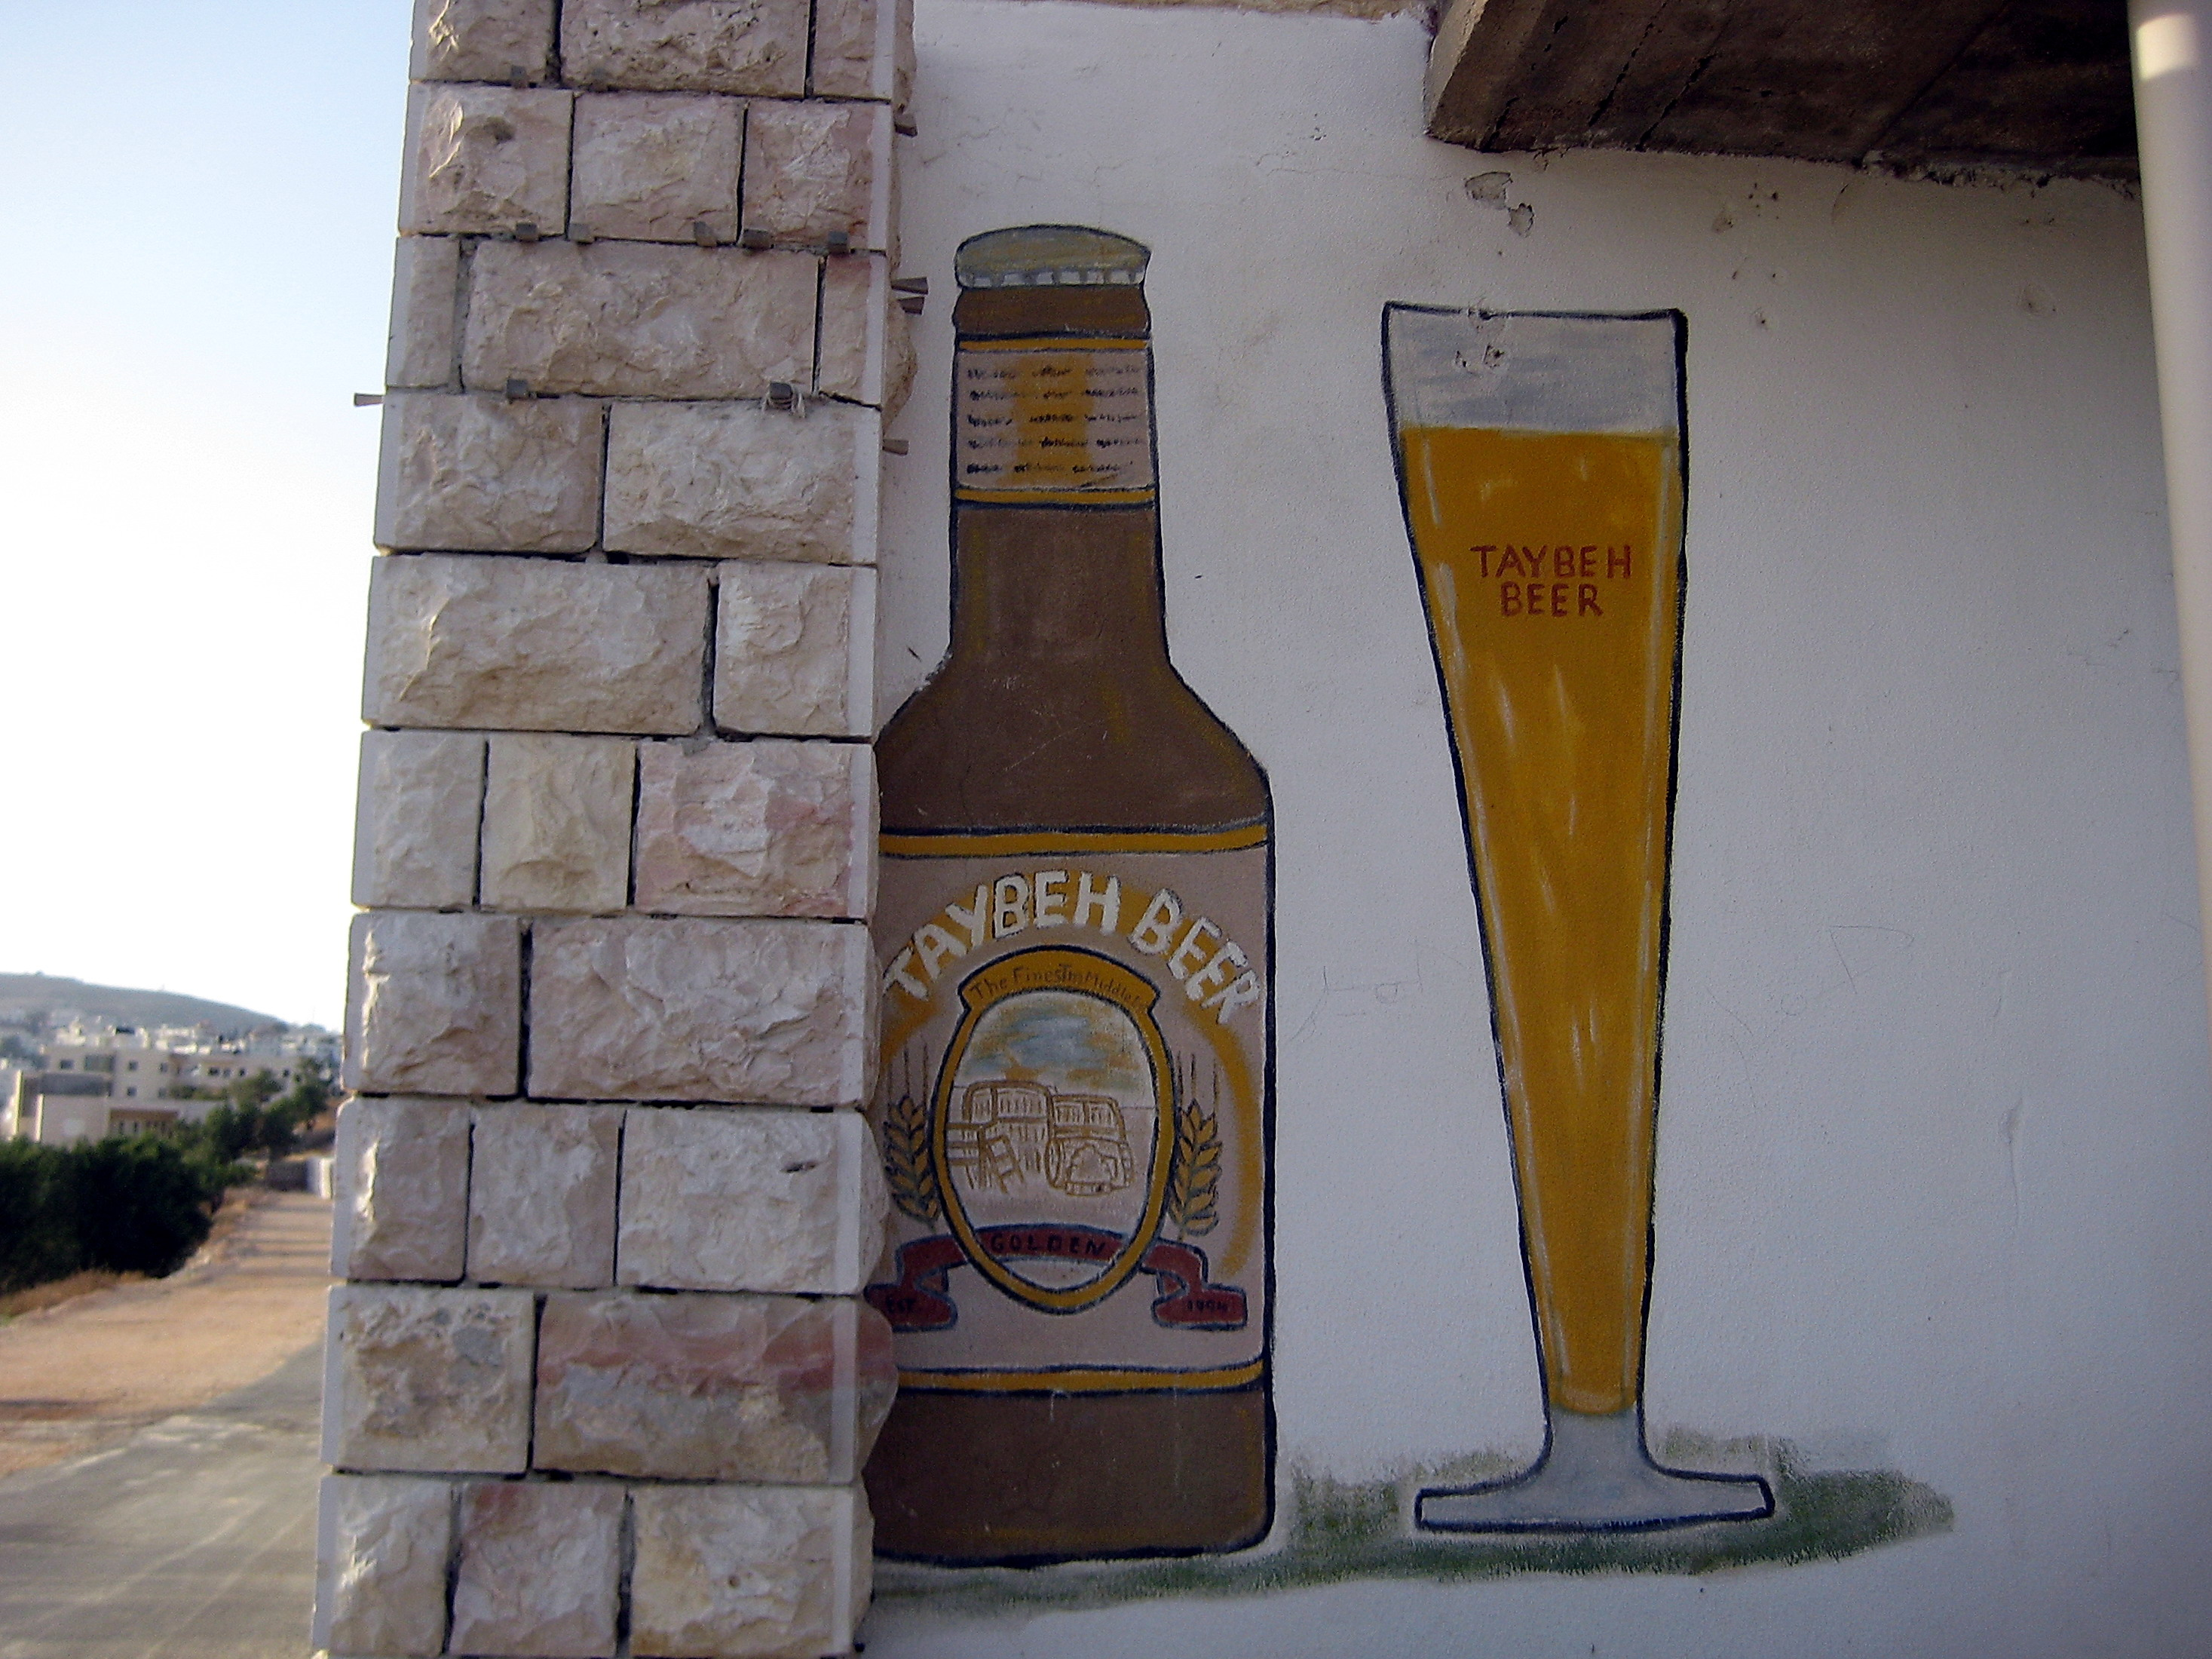 a painting of a bottle of Taybeh beer on a wall